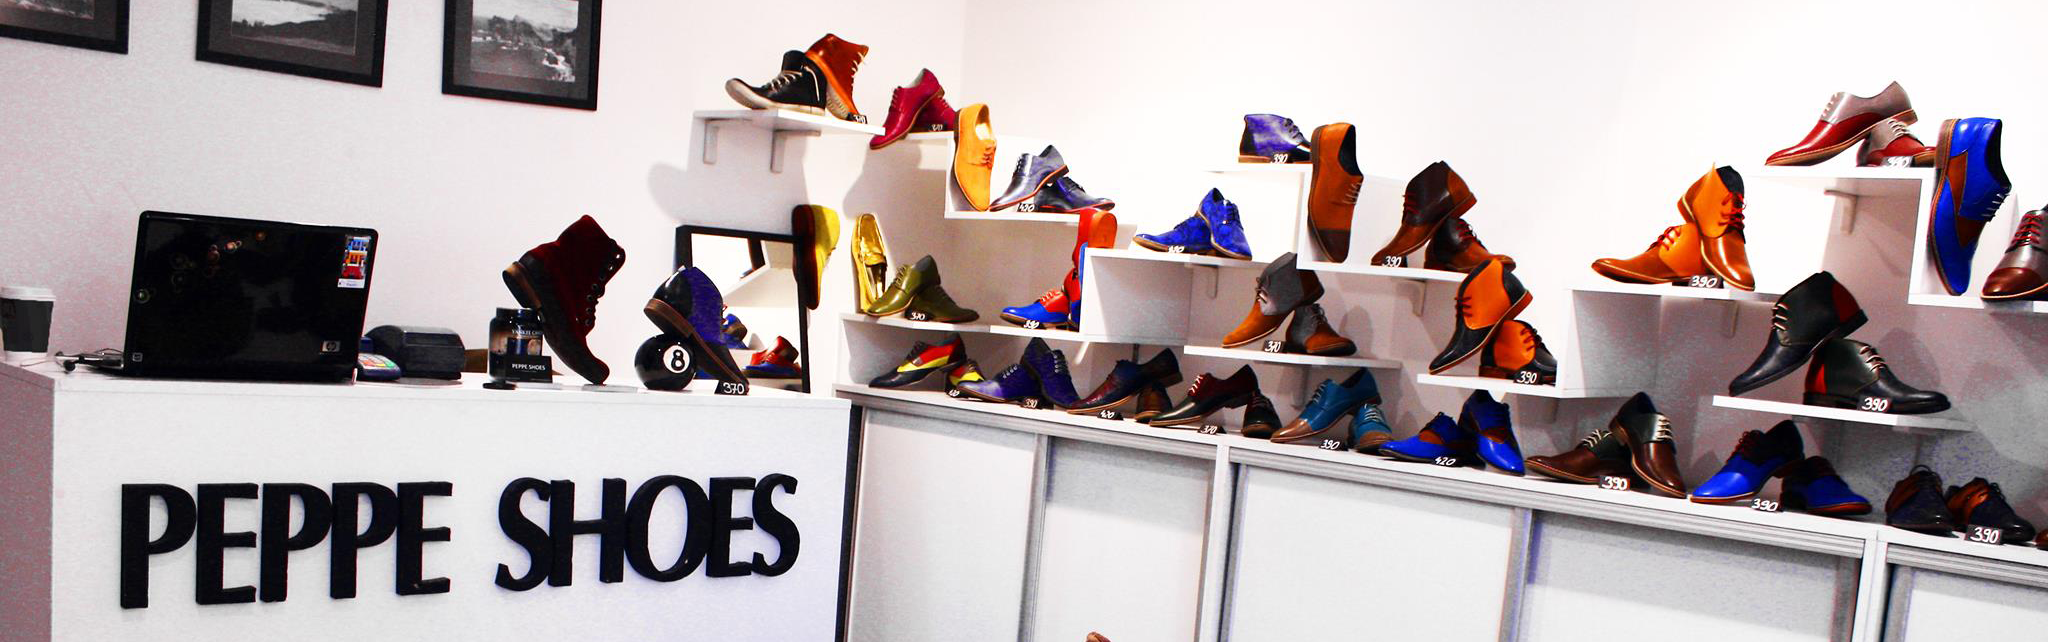 PeppeShoes store